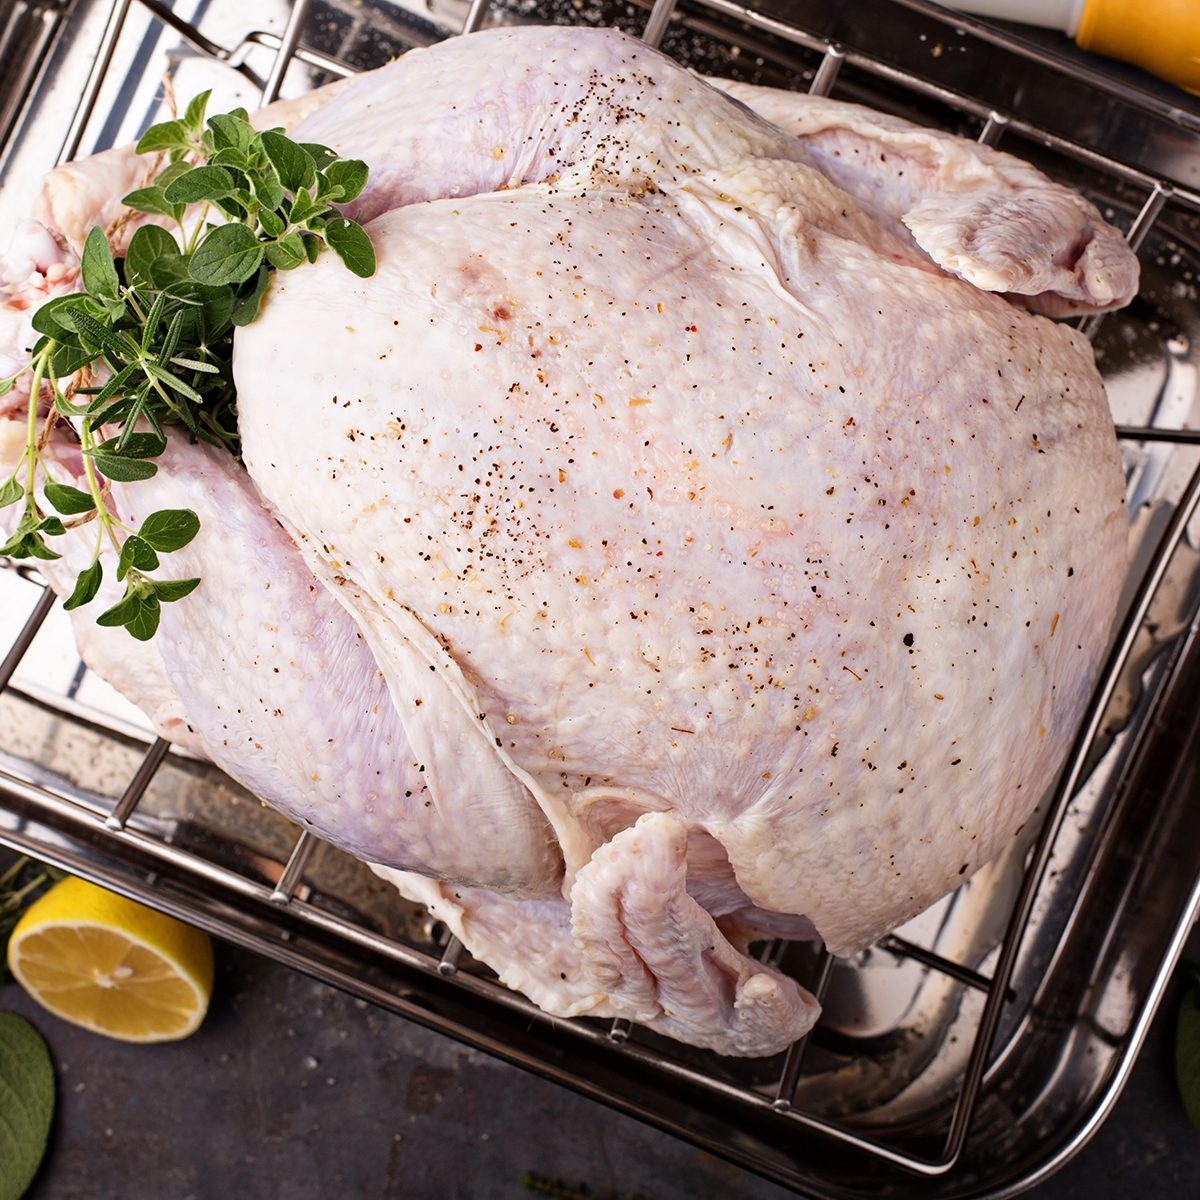 Cooking Thanksgiving or Christmas turkey in a roasting pan with lemons and herbs overhead view; Shutterstock ID 737627689; Job (TFH, TOH, RD, BNB, CWM, CM): TOH